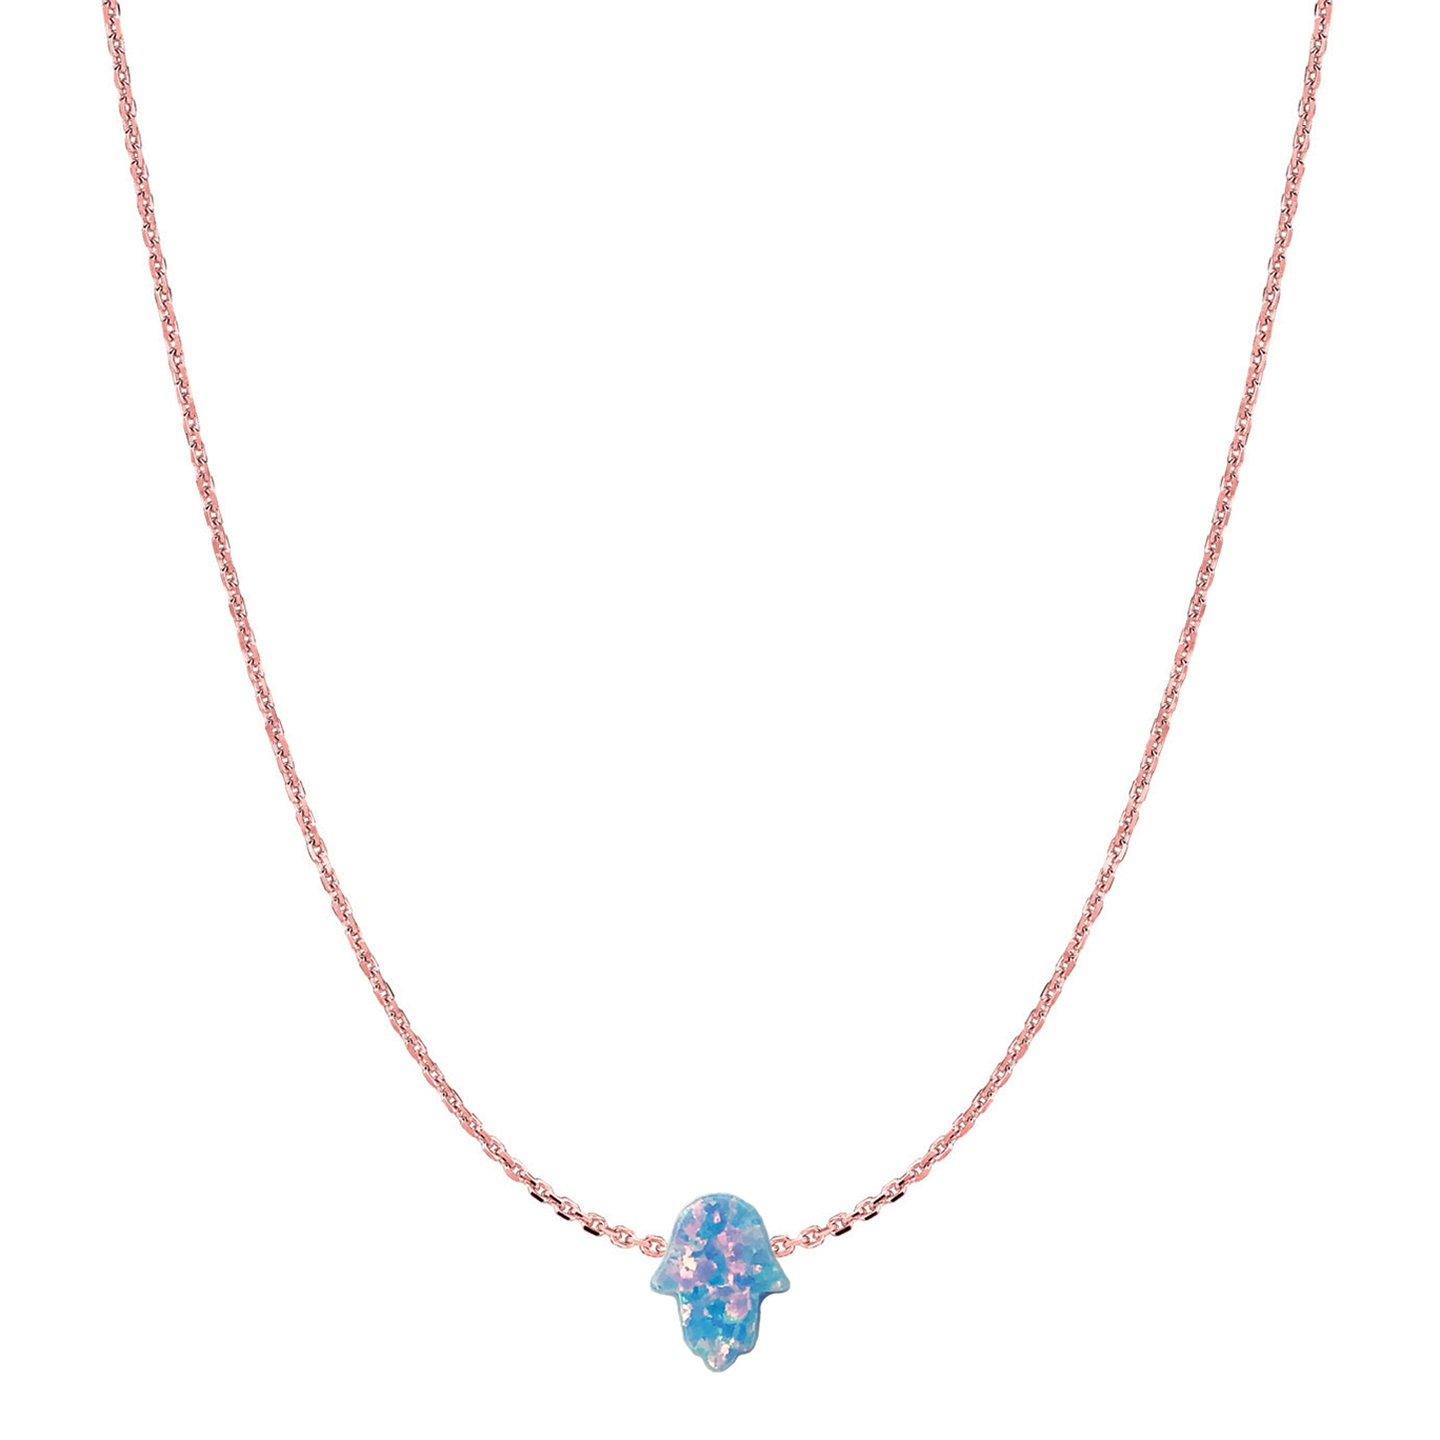 14 Karat Gold Sky Blue Opal Hamsa Necklace